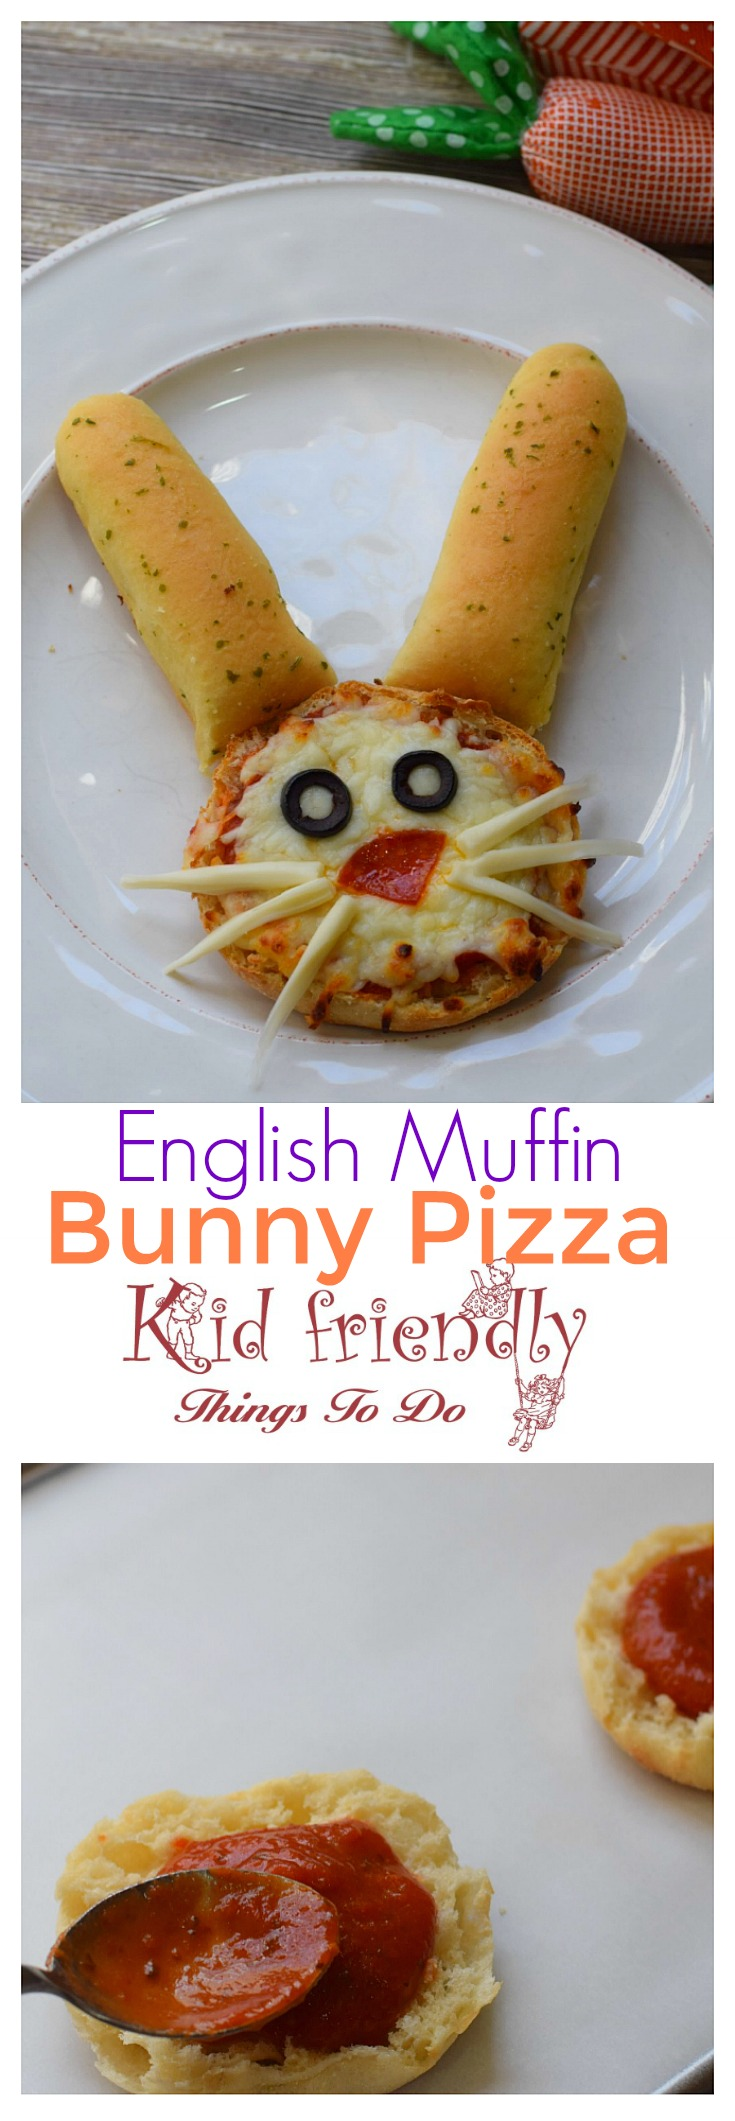 English Muffin Bunny Pizza for a Kid Friendly Fun Food Treat - Cute little bunny english muffin pizzas - www.kidfriendlythingstodo.com